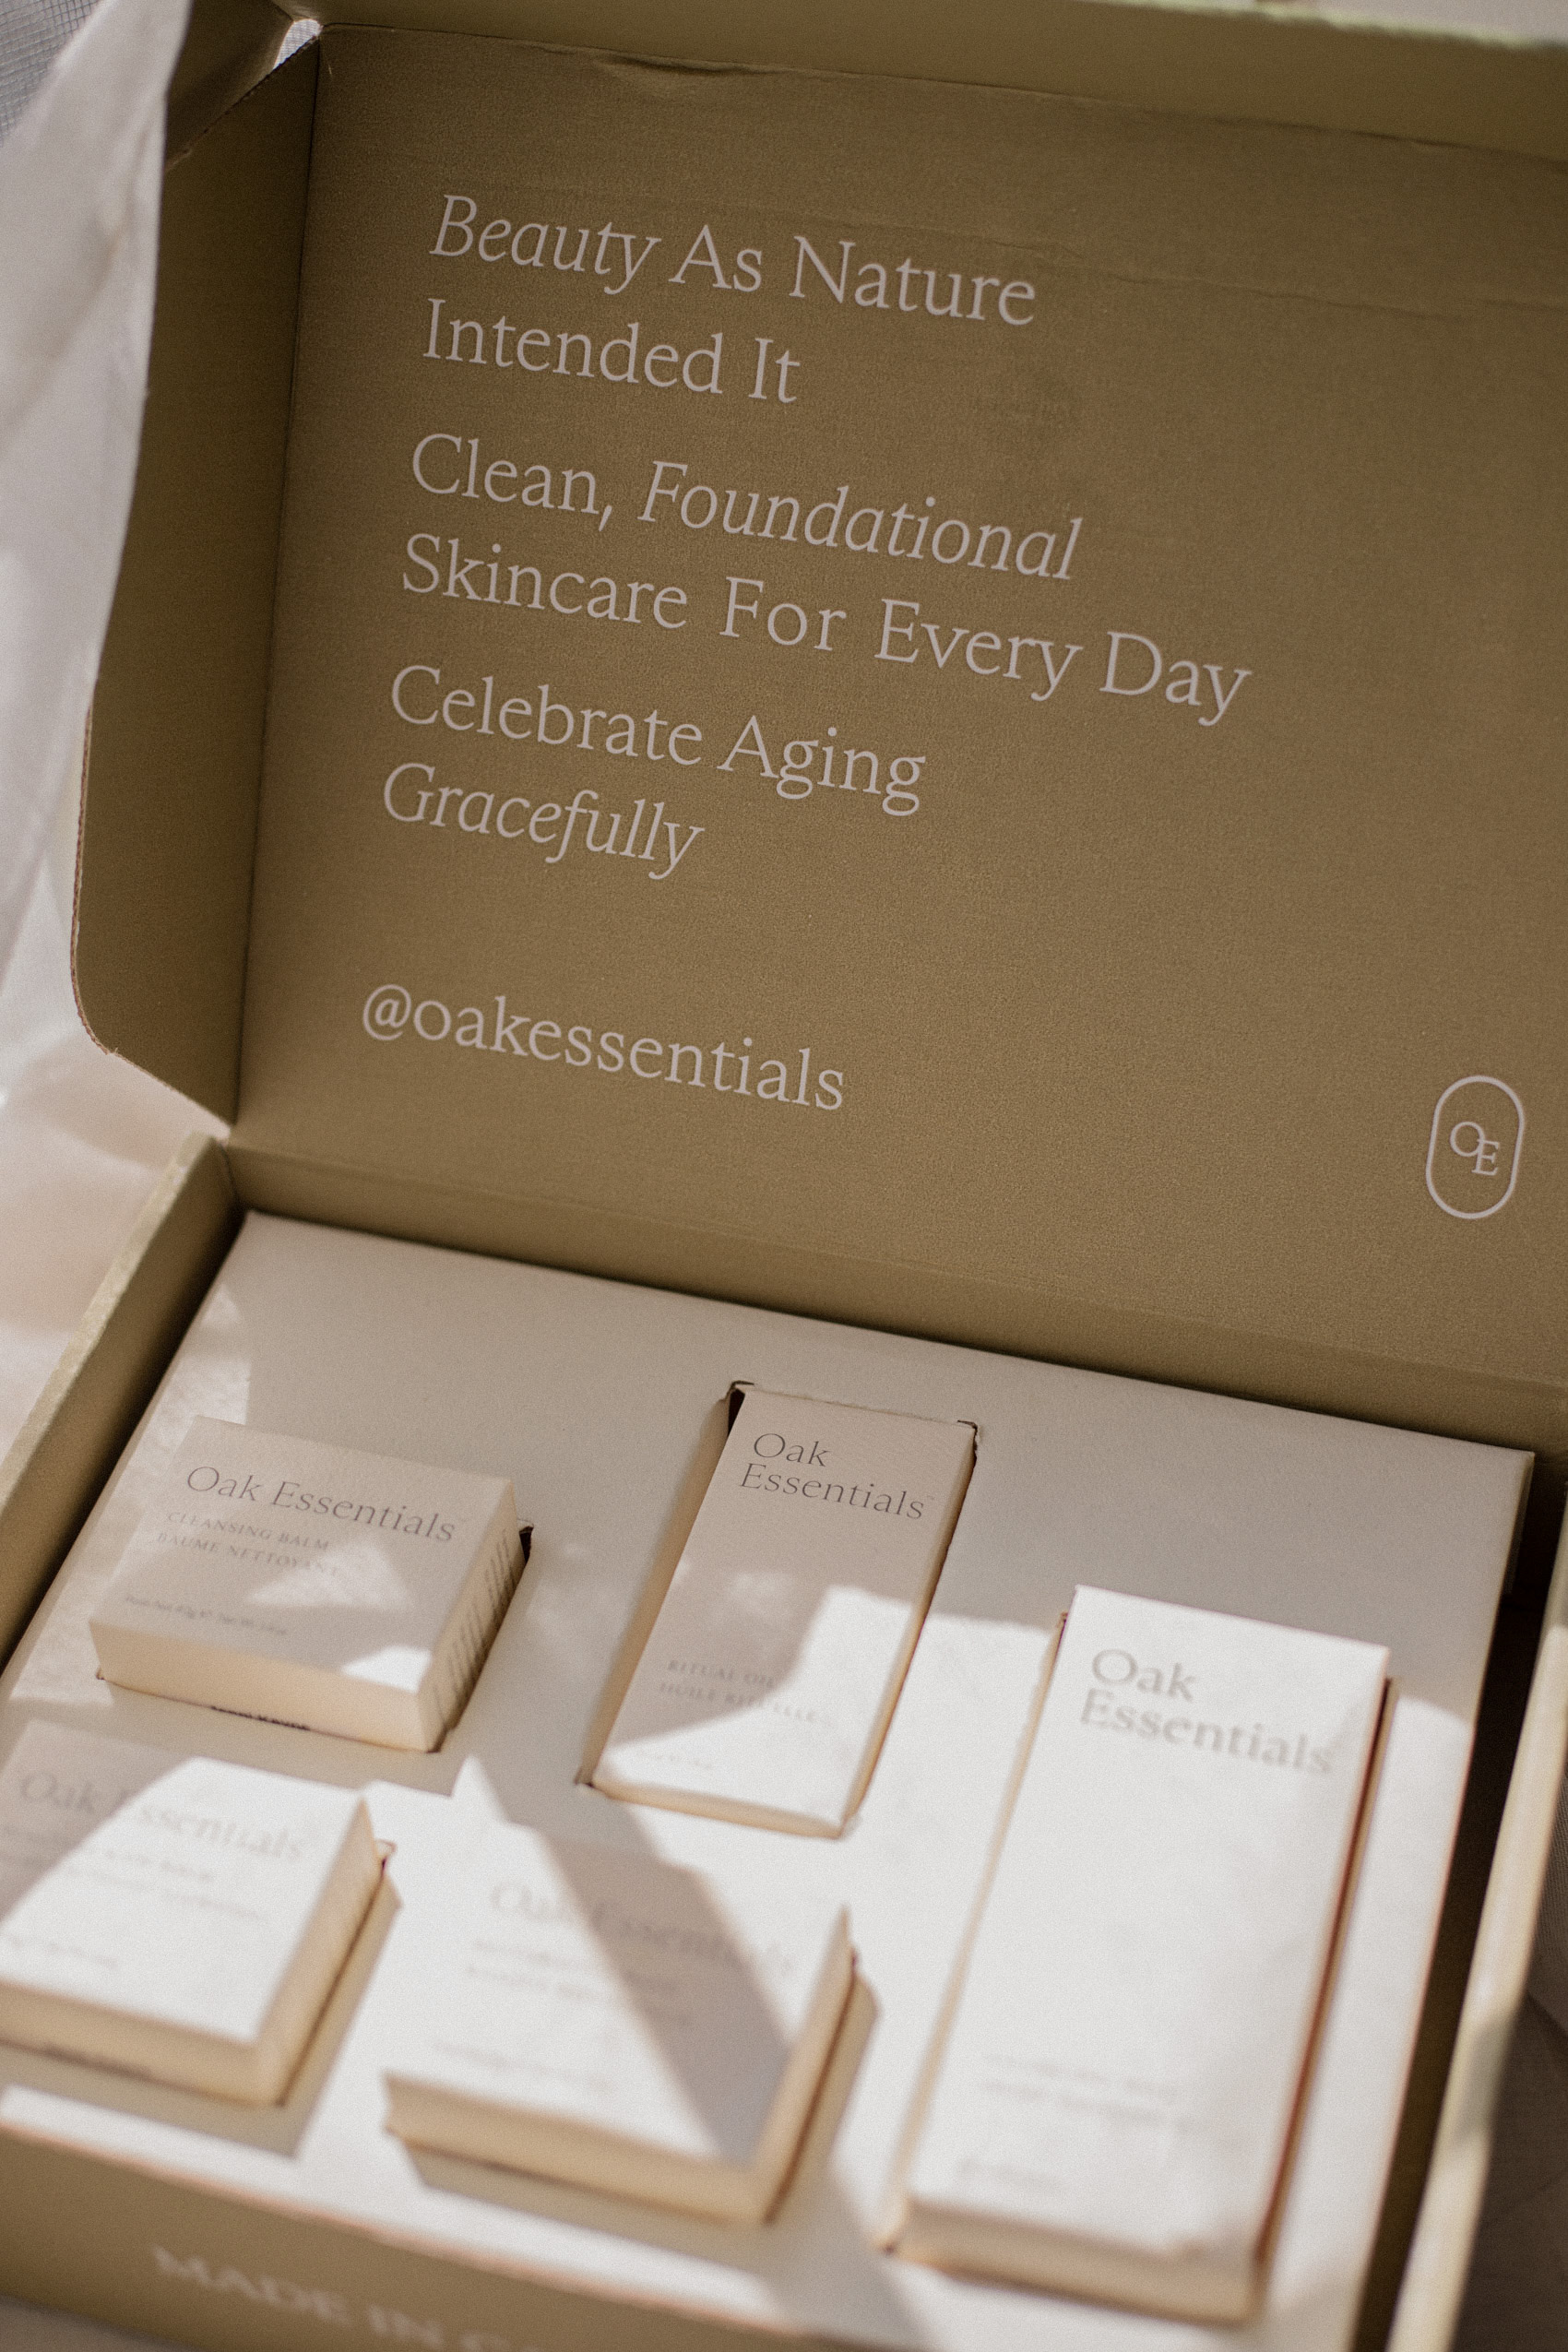 Oak Essentials Packaging: A skincare line from Jenni Kayne